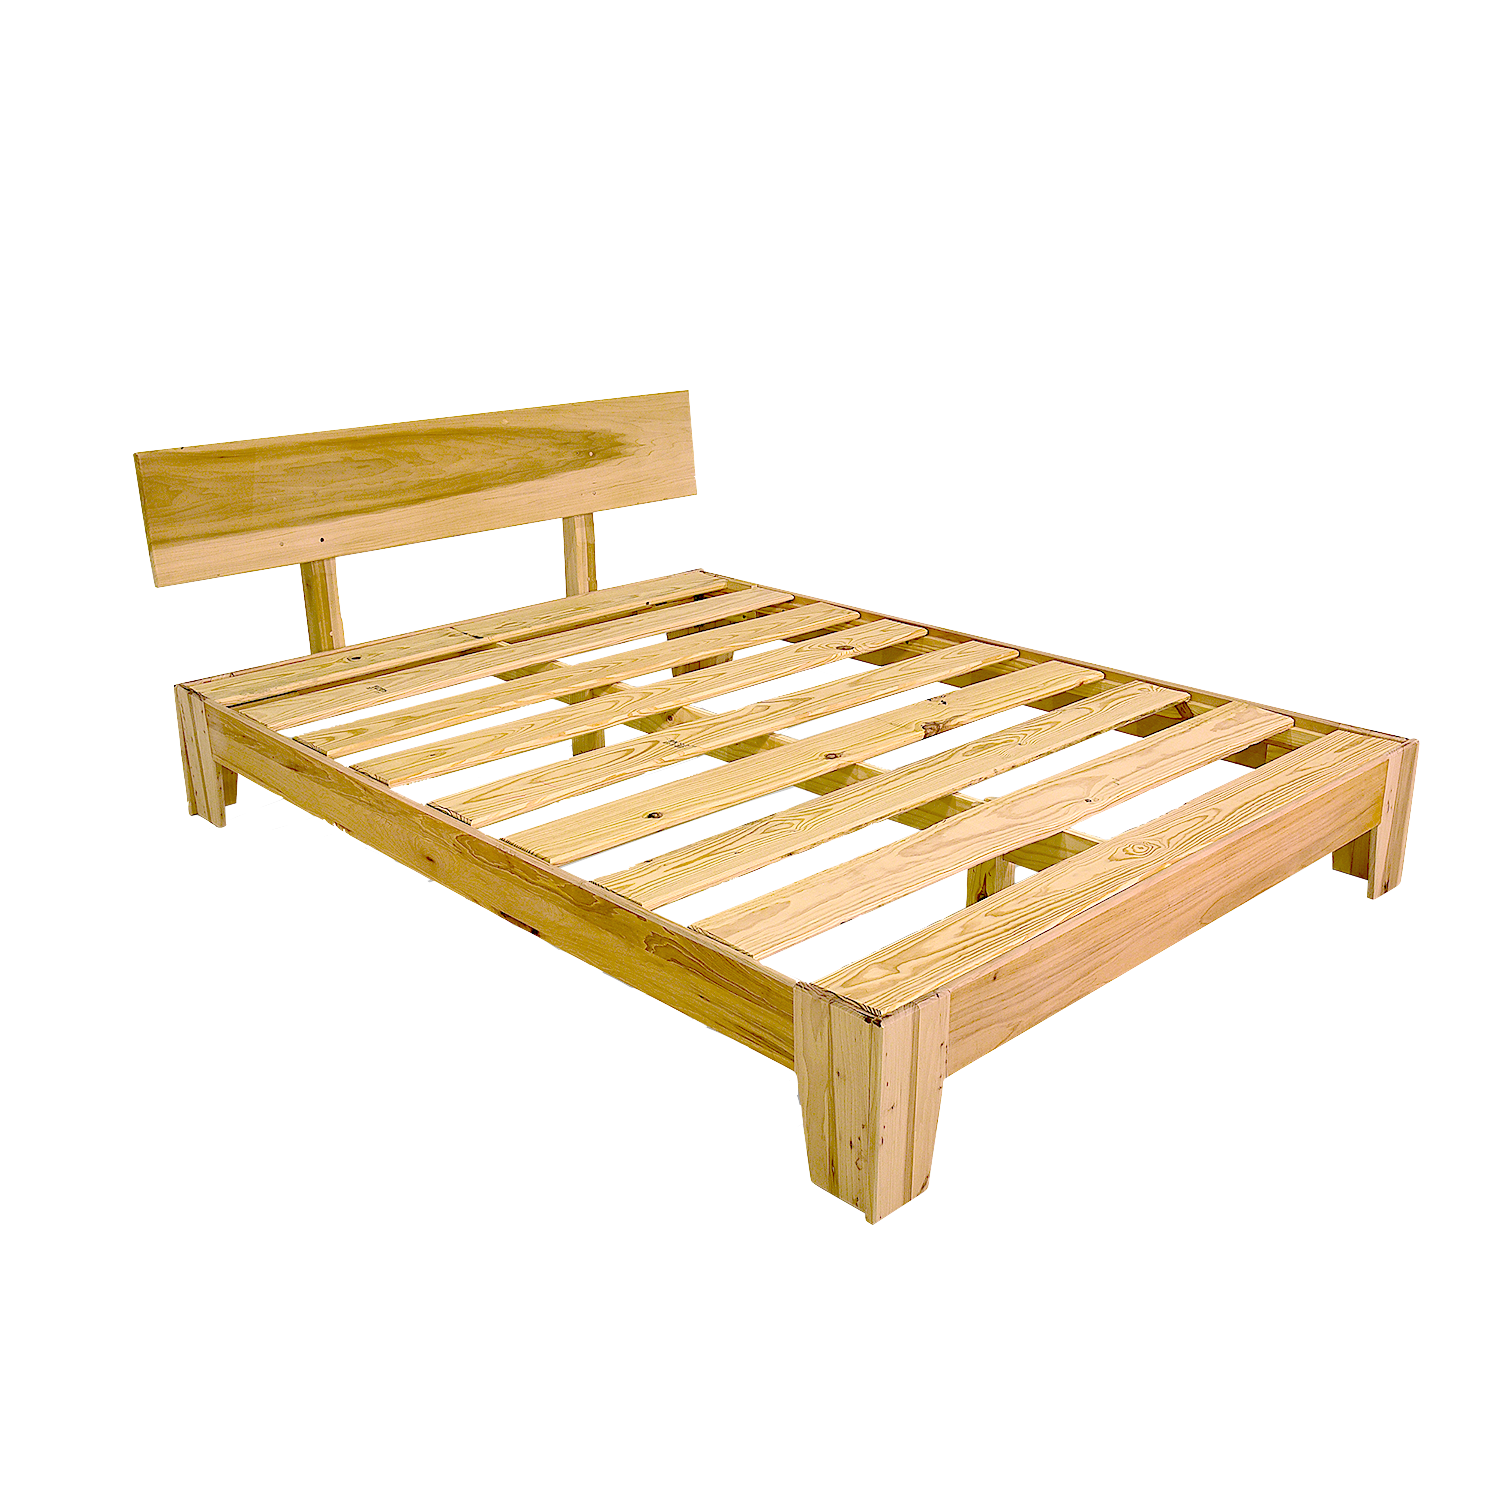 "Platform Bed Foundation 5"" low profile"